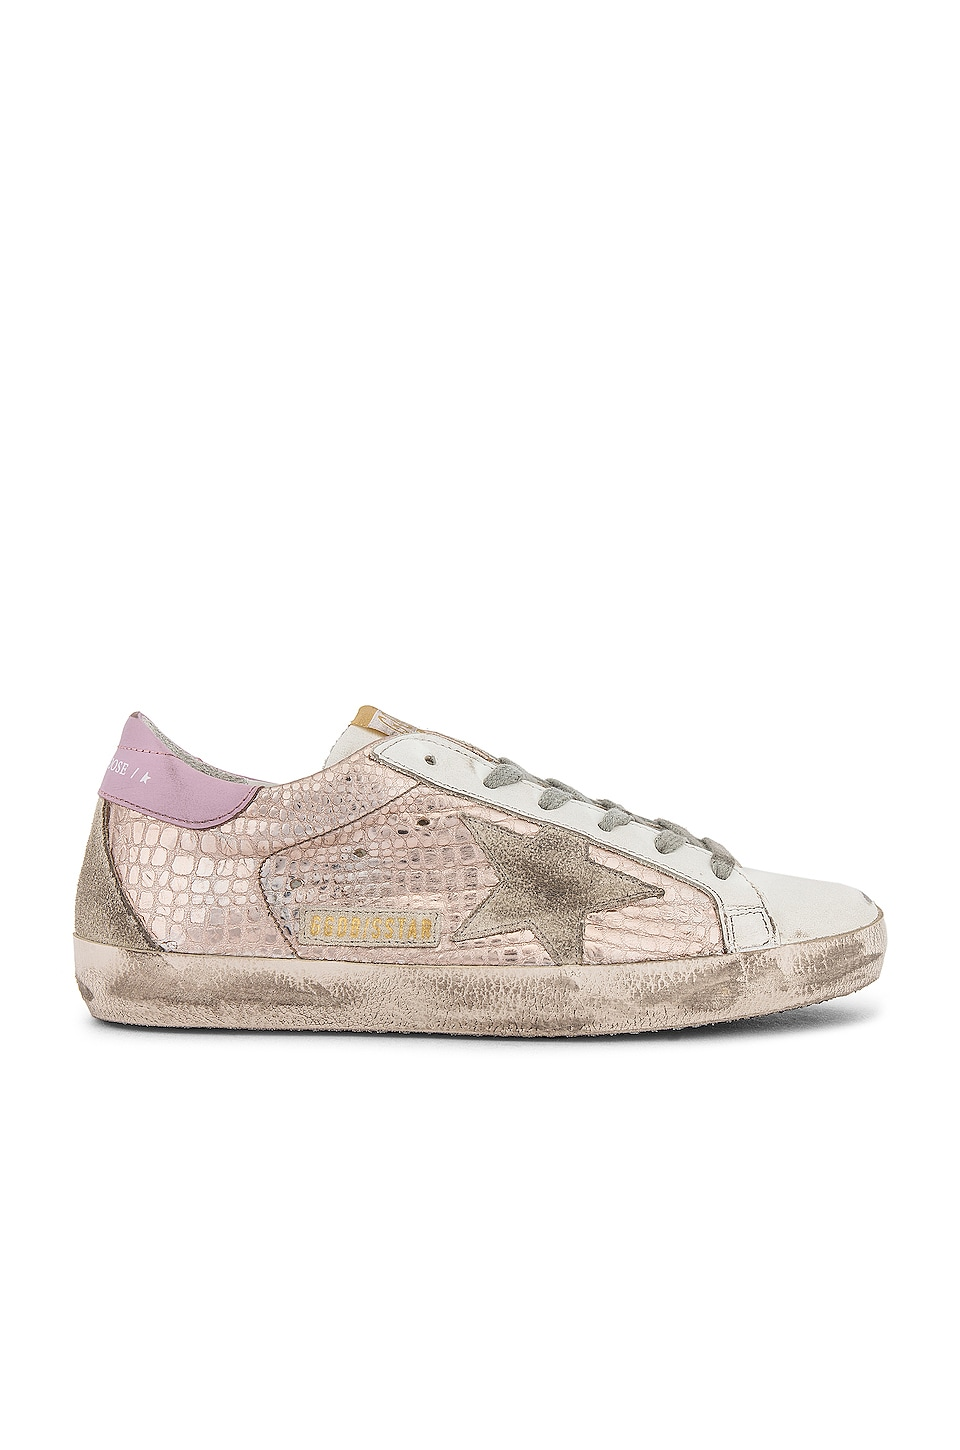 Golden Goose Superstar Sneaker in Gold Laminated Cocco & Ice Star